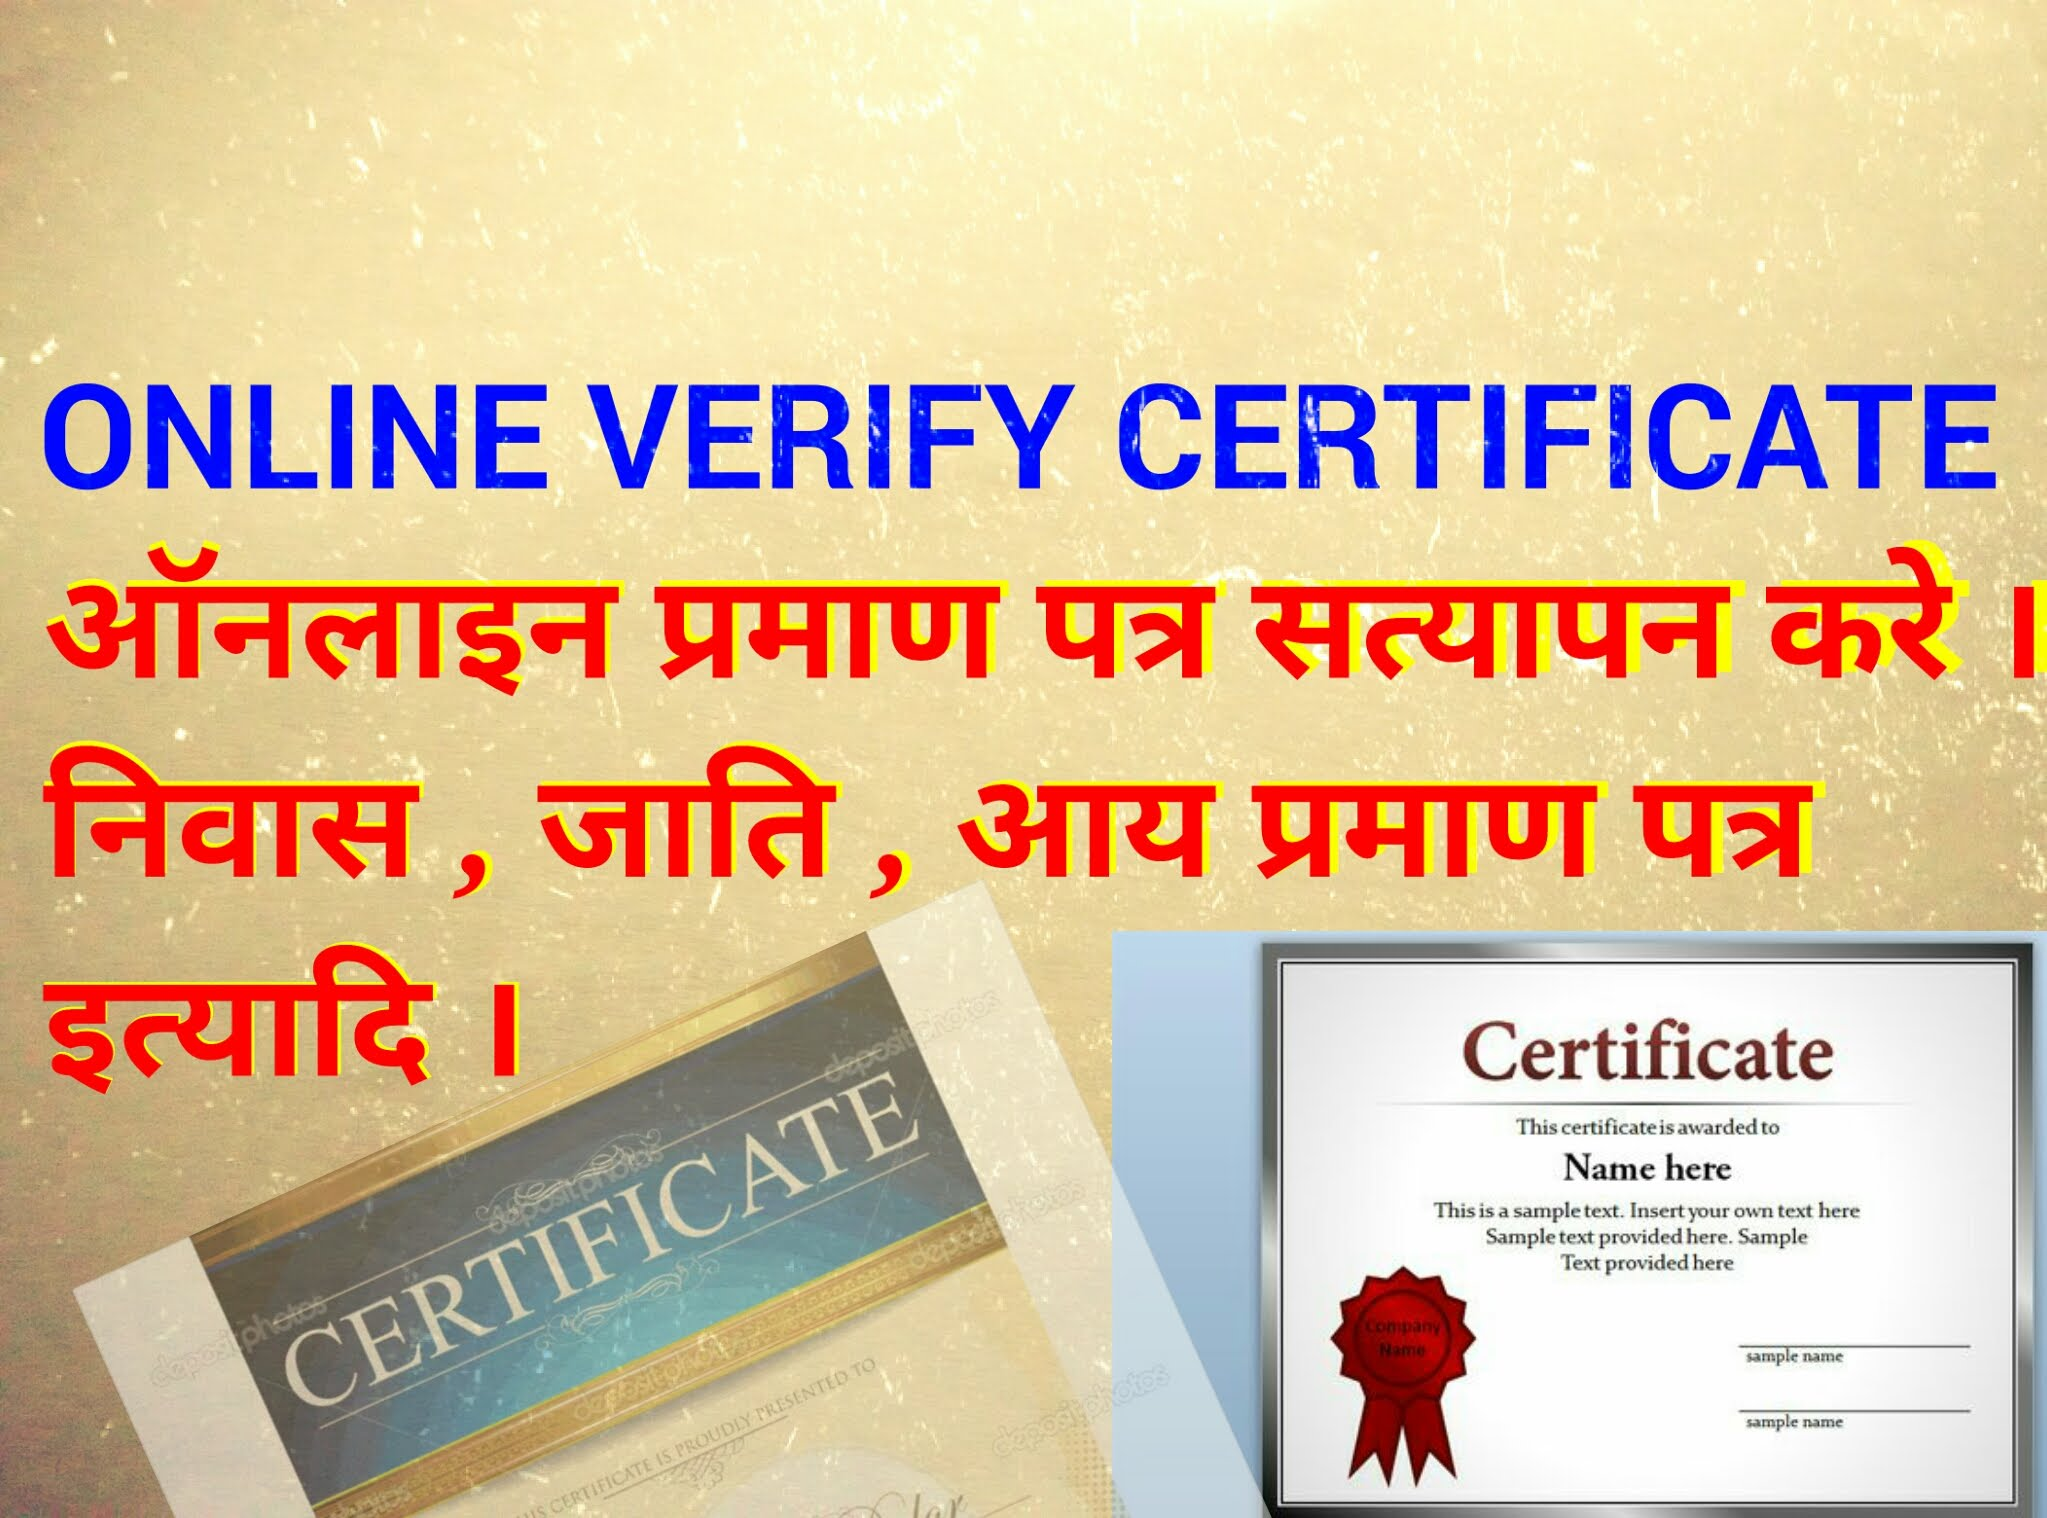 online verify certificate (Part 1) YouTube